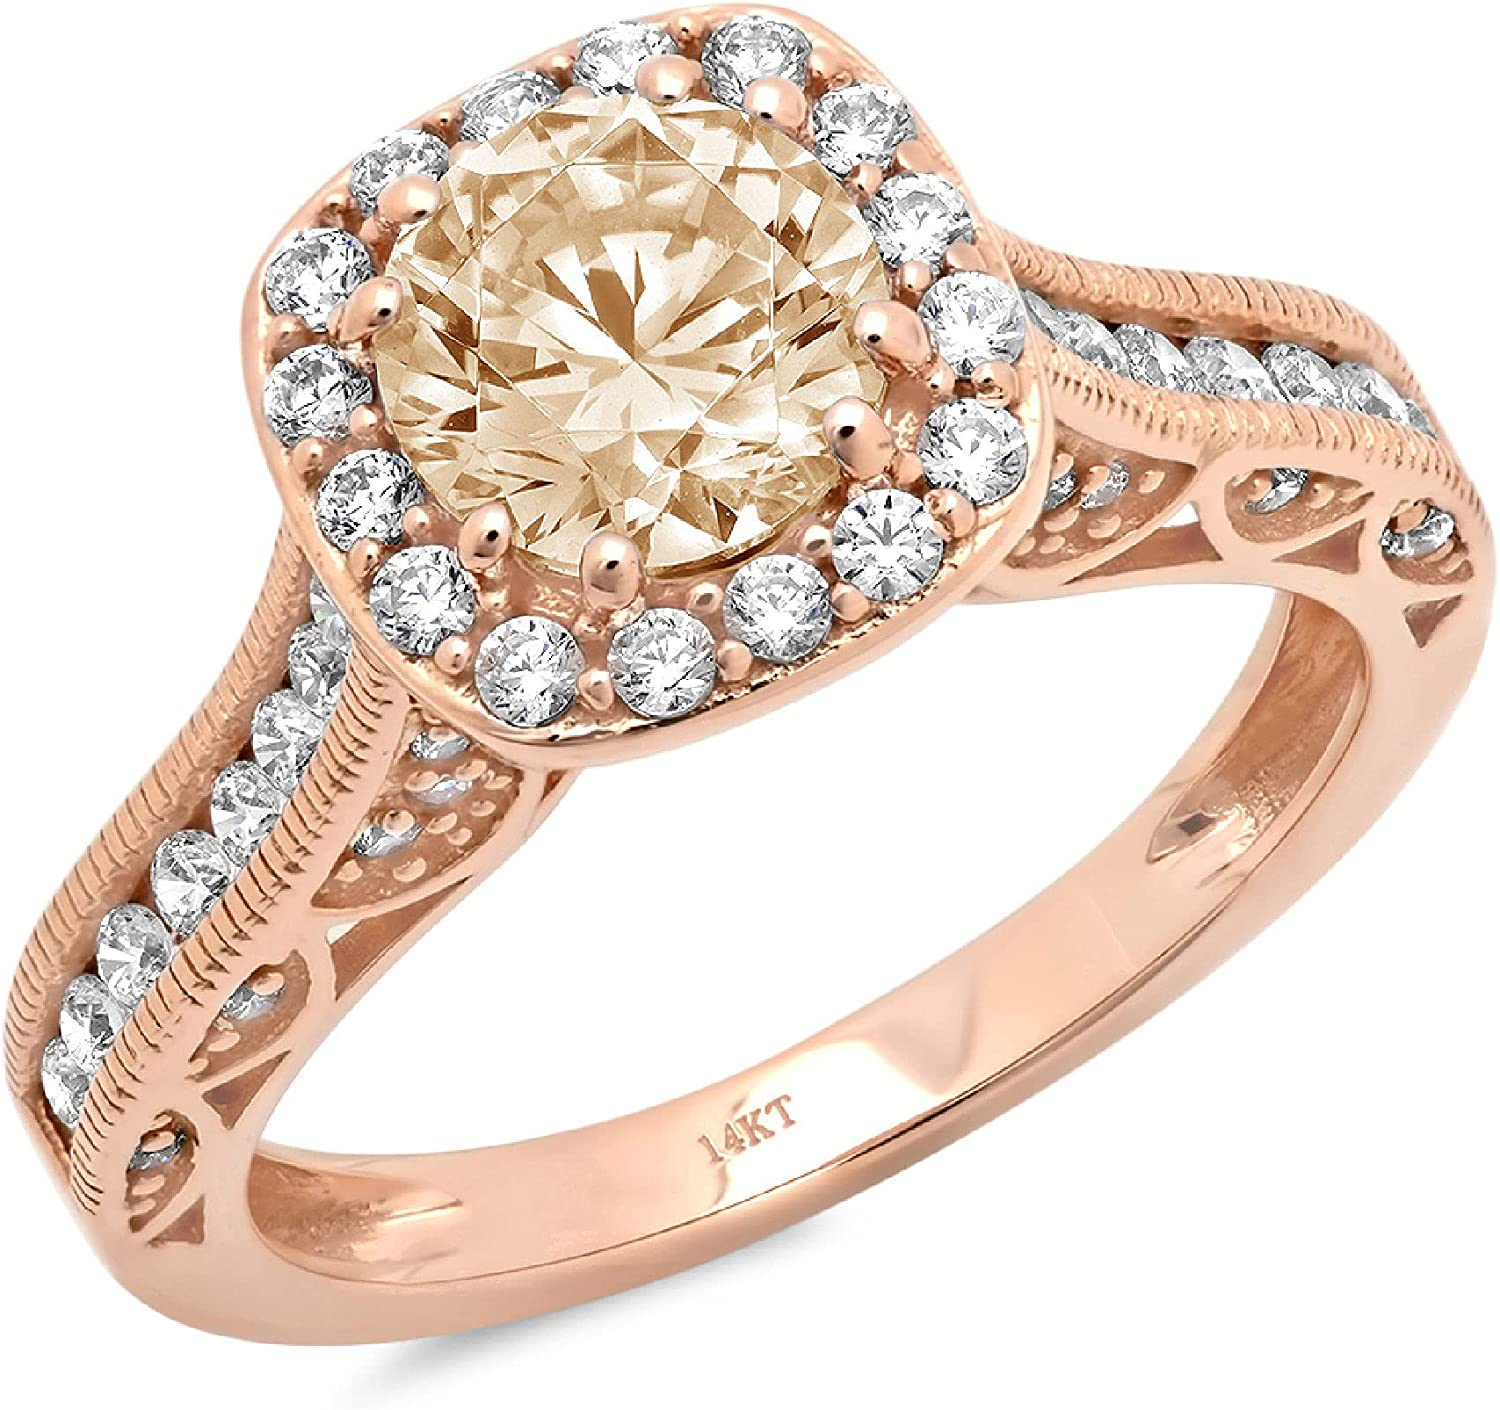 2 ct Brilliant Round Cut Solitaire accent Halo Stunning Genuine Flawless Simulated Yellow Moissanite Modern Promise Statement Designer Ring 14k Rose Gold